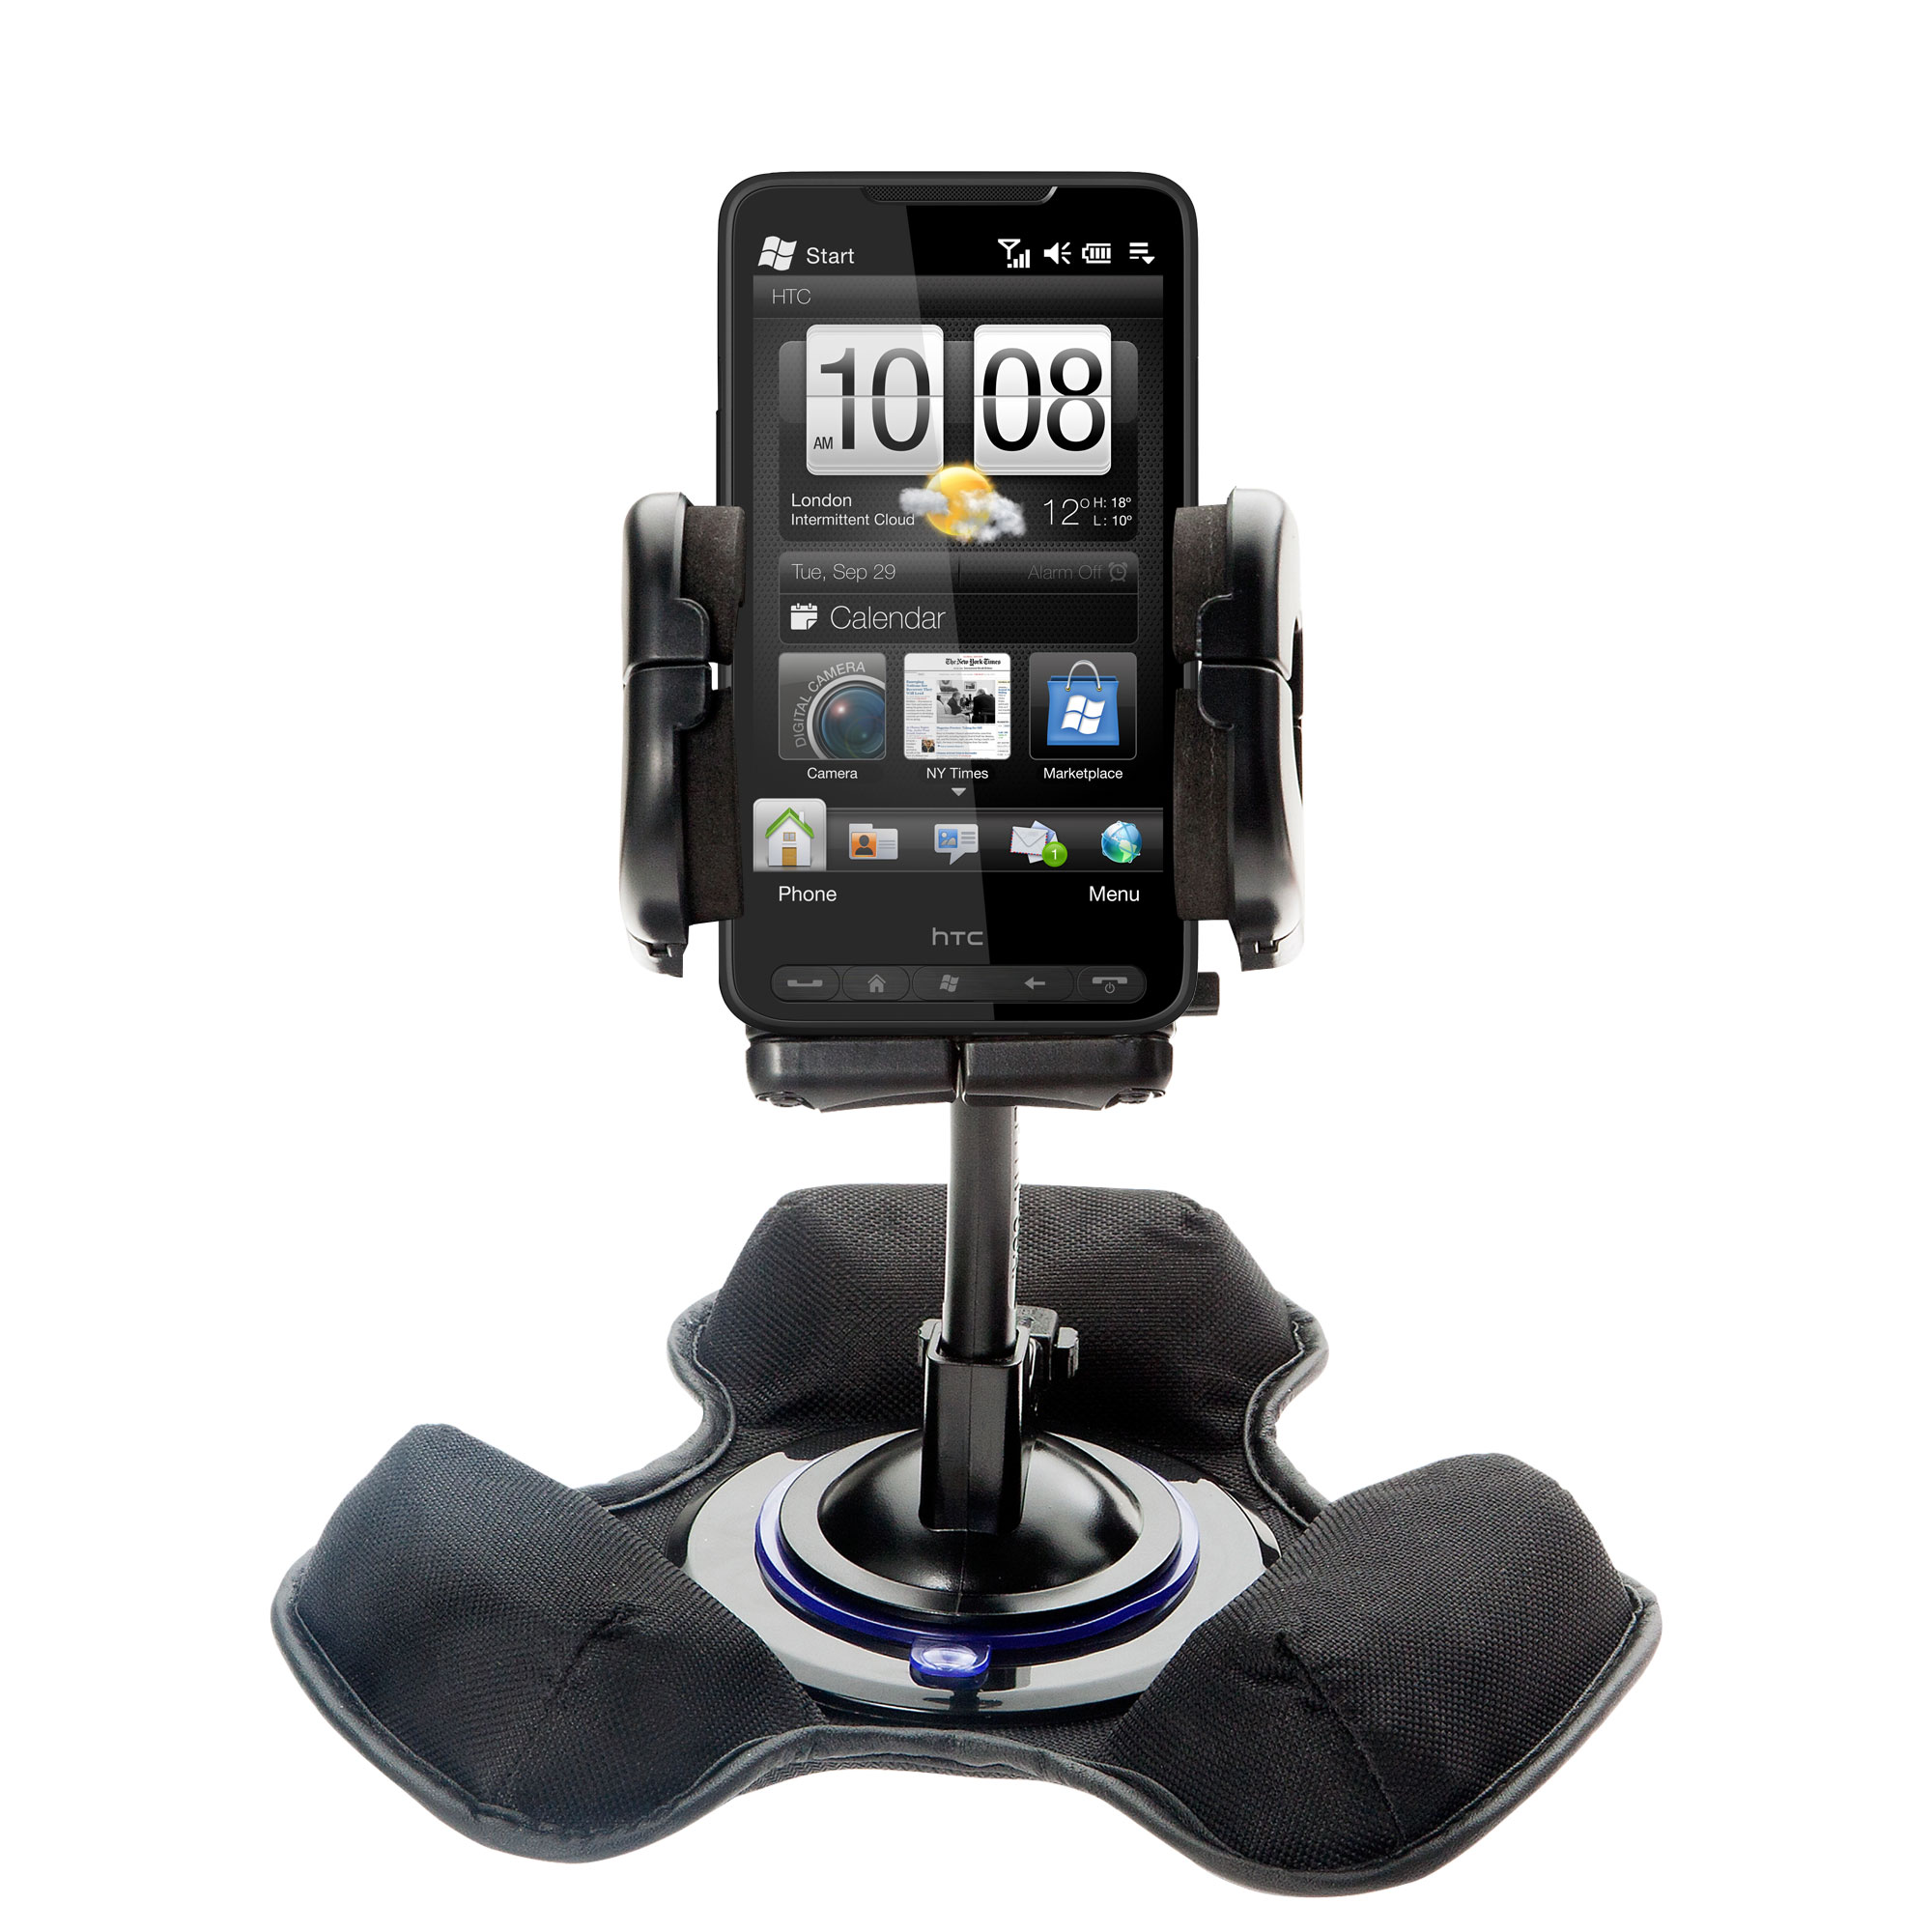 Dash and Windshield Holder compatible with the HTC HD3